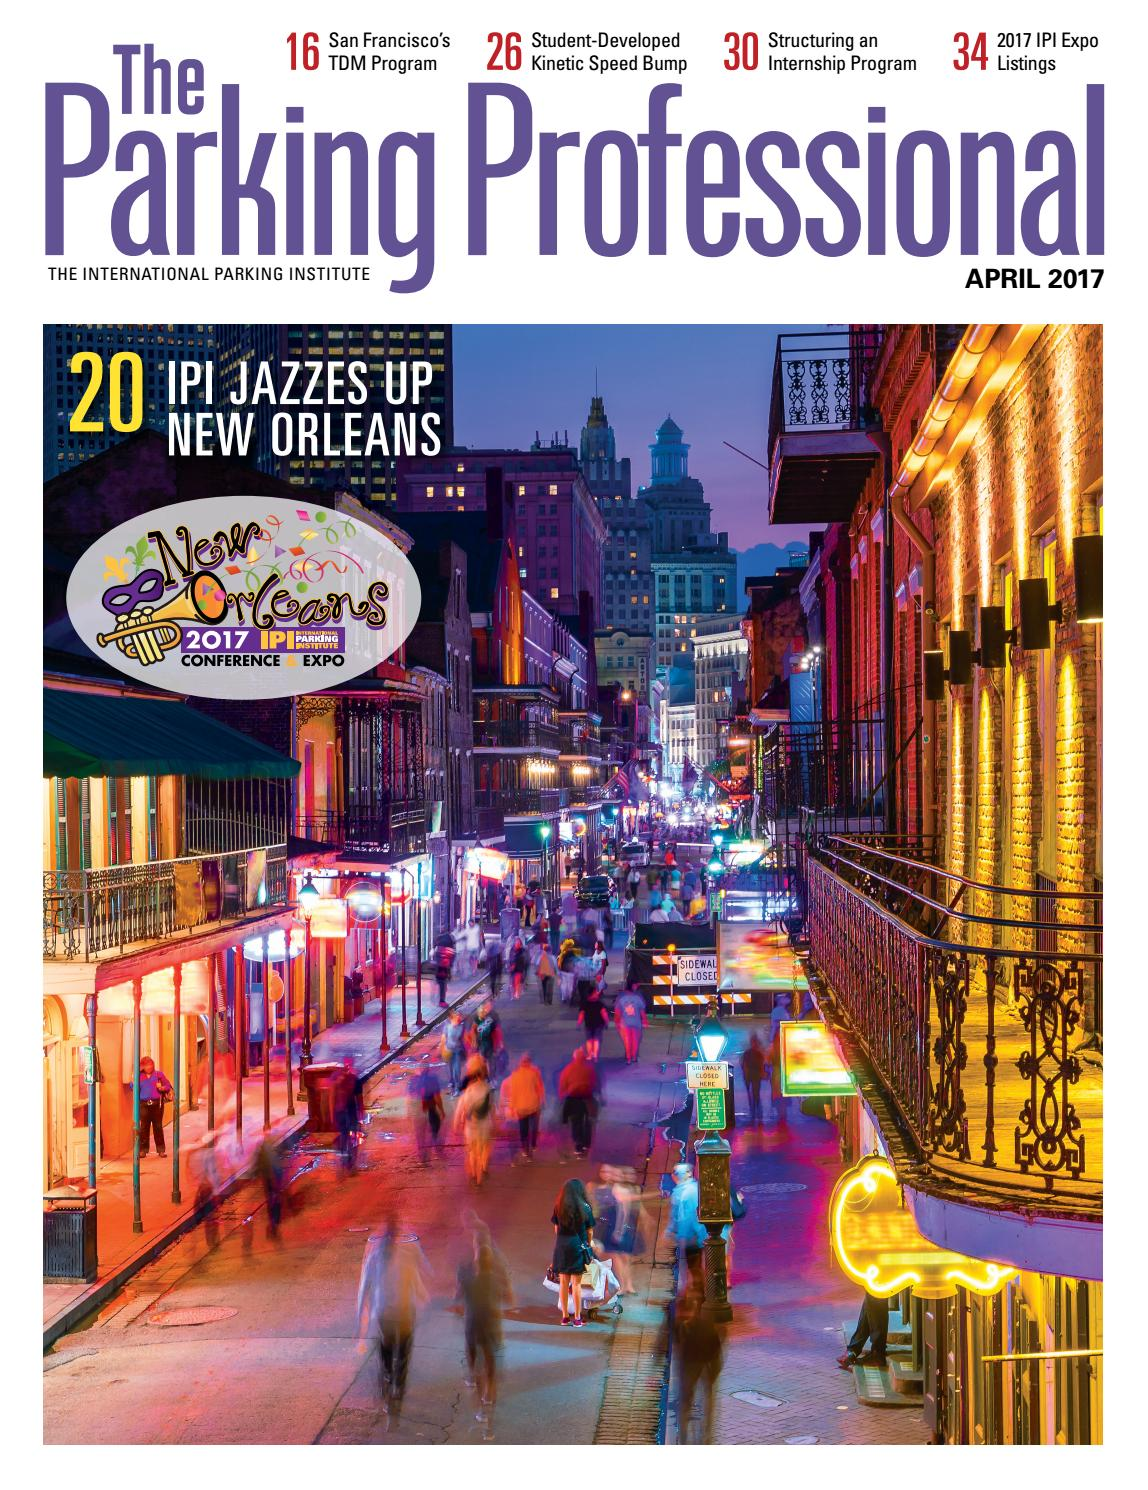 The Parking Professional April 2017 by International Parking